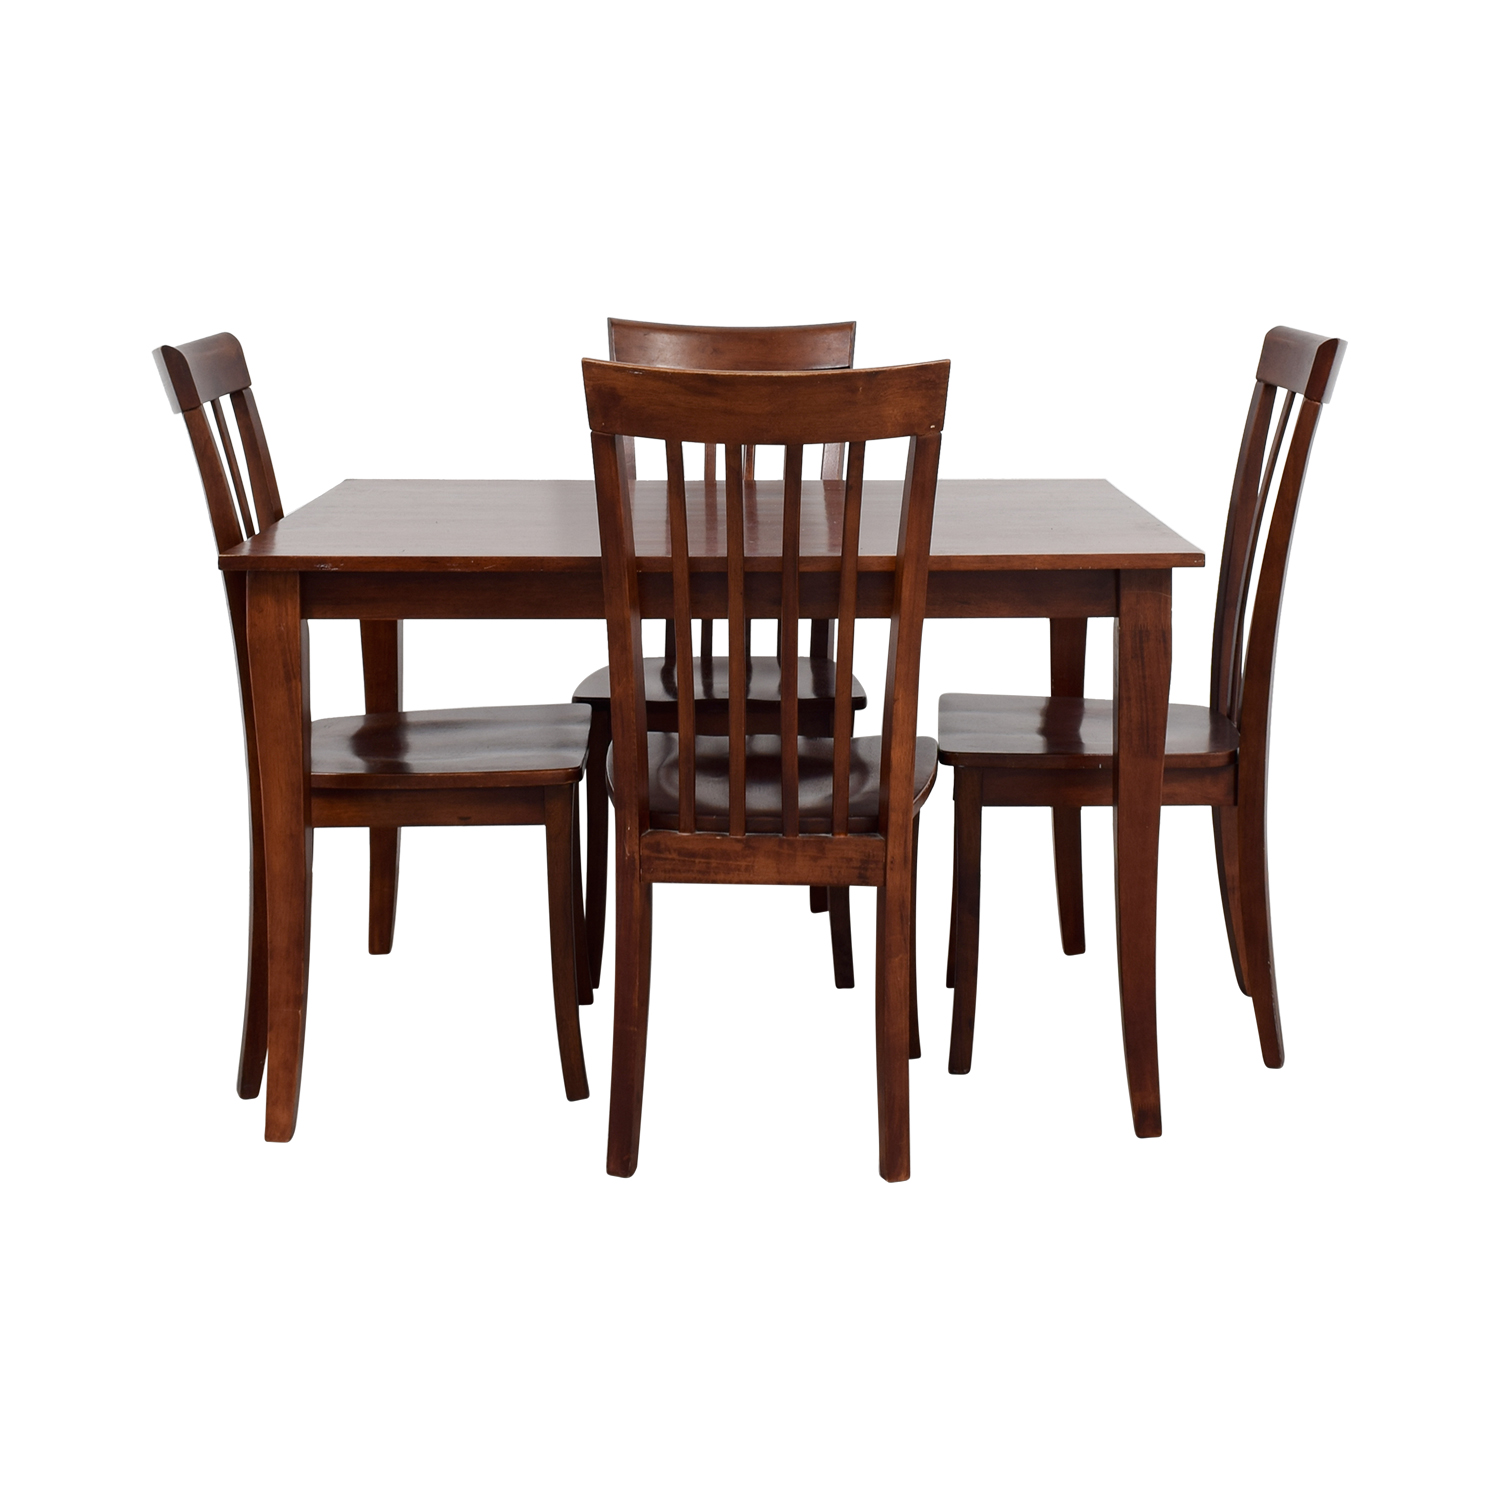 Wooden Dining Table Set: Wood Dining Set / Tables